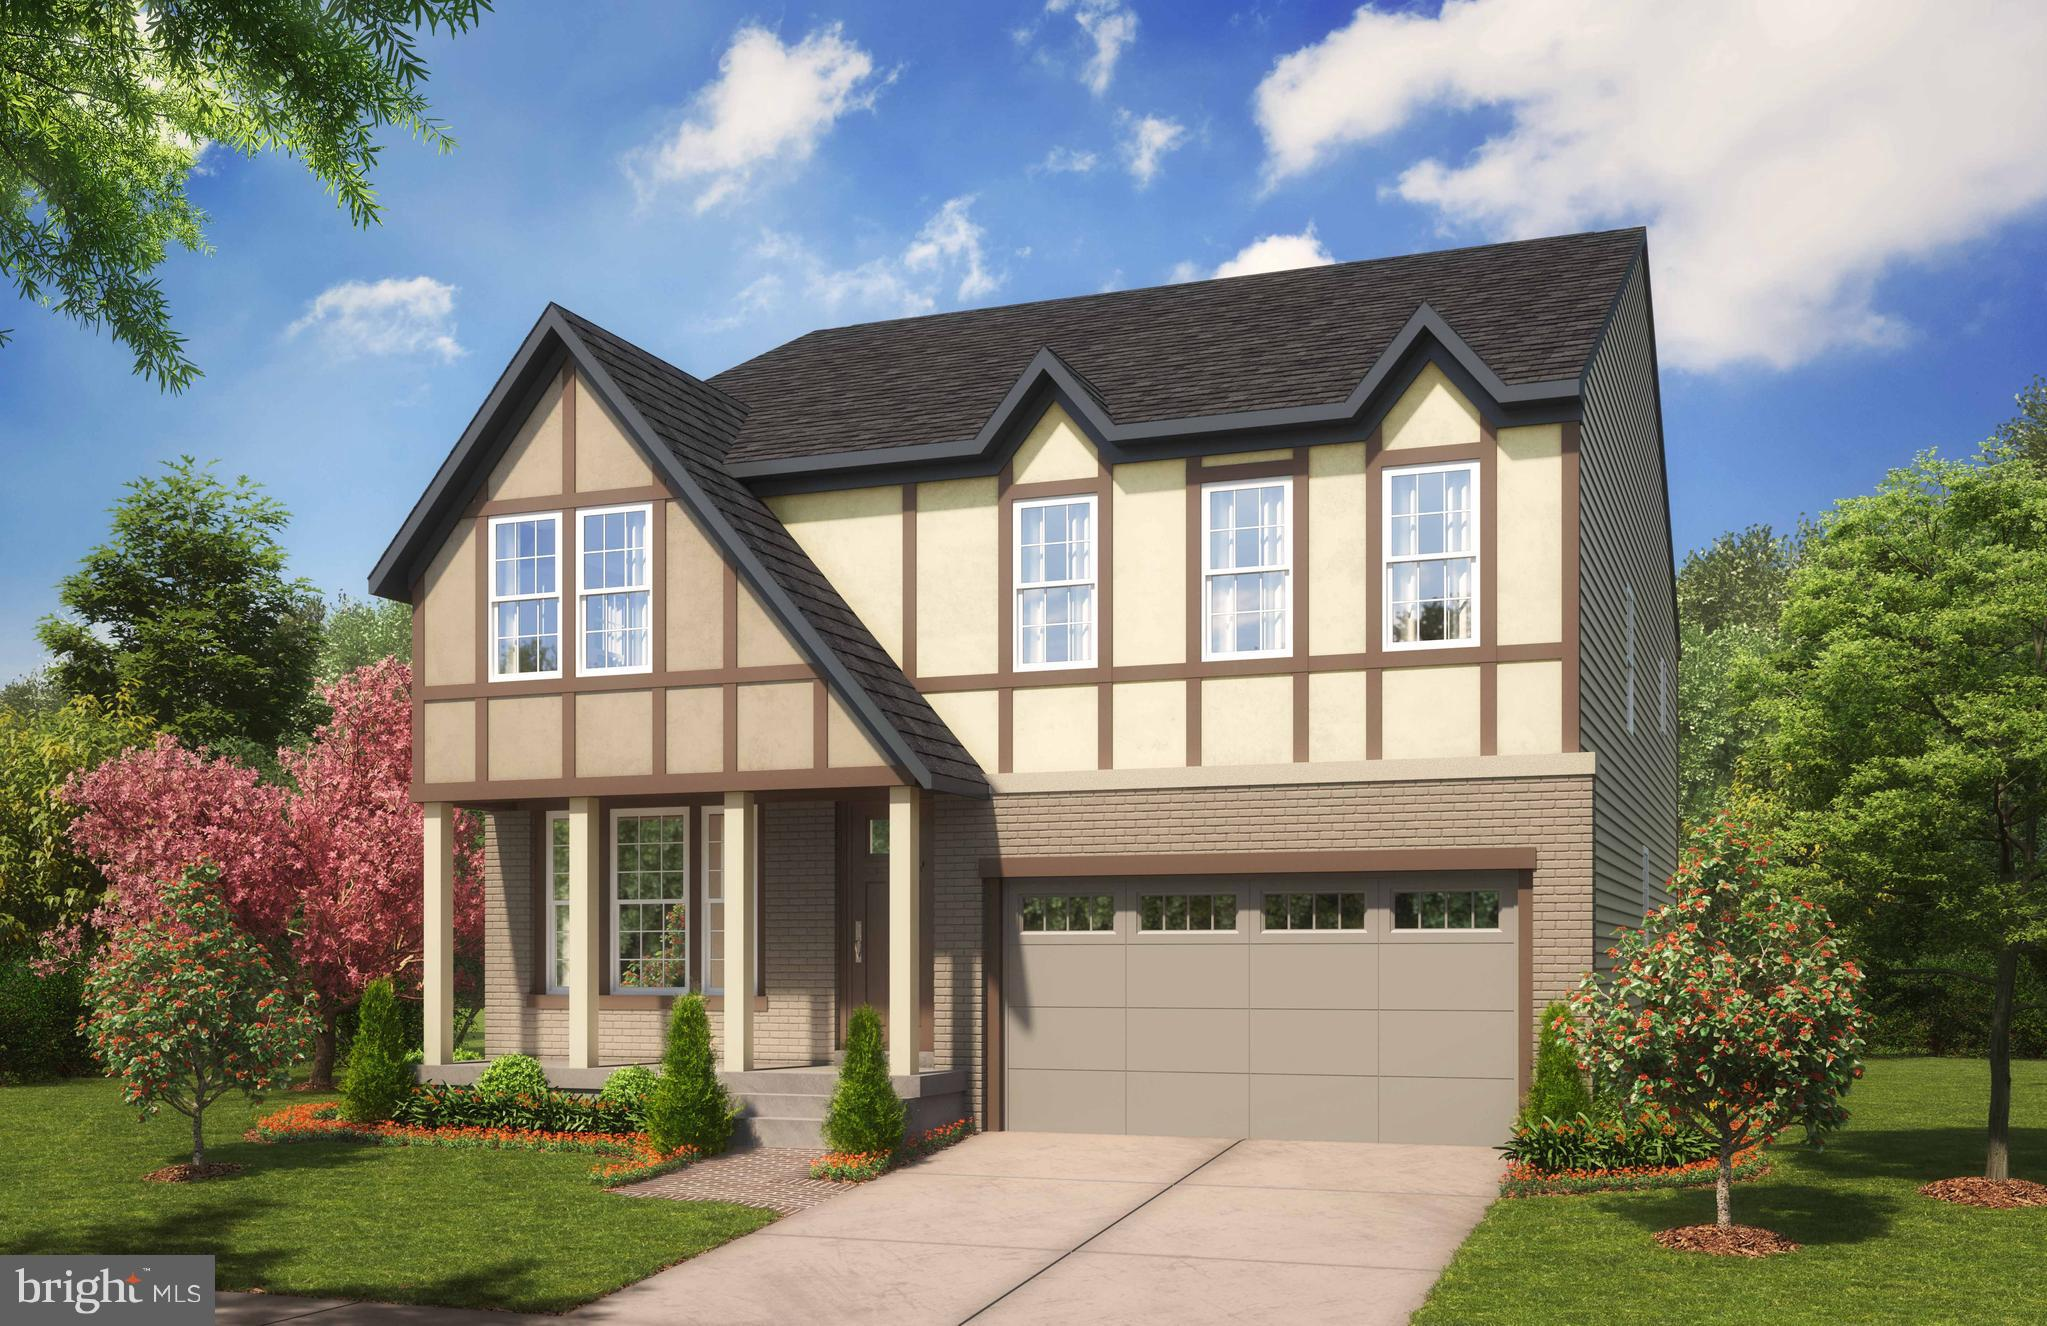 55+ ACTIVE ADULT COMMUNITY! ELEVATOR INCL. STUNNING BRAND NEW VAN METRE SFH W/ 2 CAR GAR. GOURMET KIT W/ SS APPLIANCES & PANTRY. HW FLOOR ON MAIN LVL. UPGRADED CERAMIC TILE IN ALL BATHS. GRANITE COUNTERS IN KIT & ALL BATHS.OPT GAS FP IN GREAT RM. MASTER SUITE W/ BUILD-ON COFFER CEILING, SITTING RM & SPA-LIKE MBA. EXTRA SPACE IN UPPER LVL FOR RETREAT. PICS OF MODEL, FLOOR PLANS & OPTIONS WILL VARY.